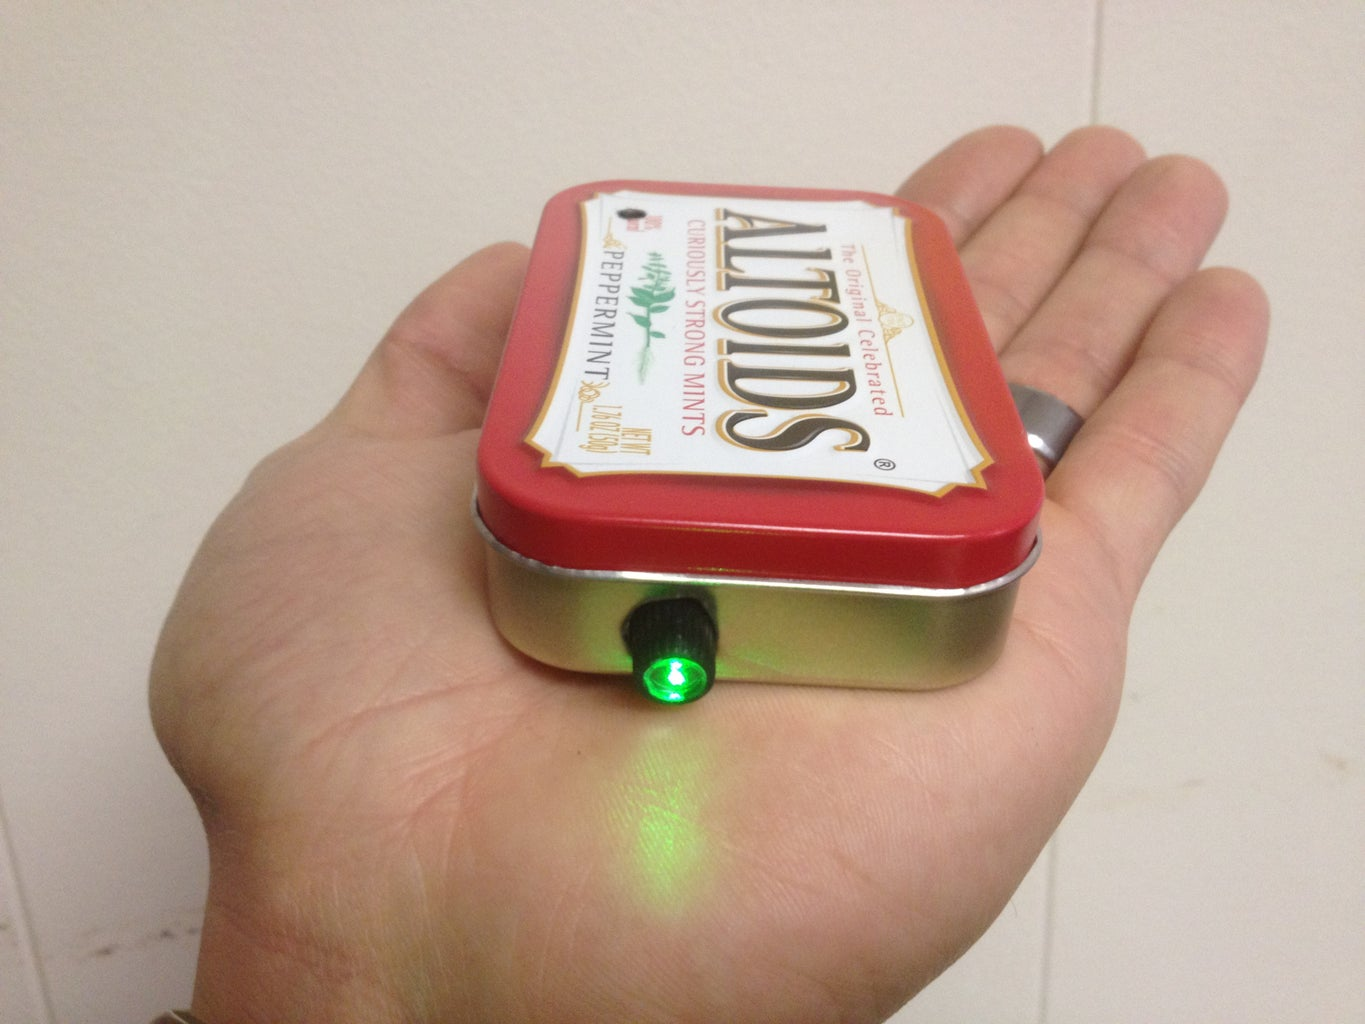 MintyBeam: Bug a Room and Transmit Voice Over a Laser Beam (also a Super Spy Ear/Stethoscope)